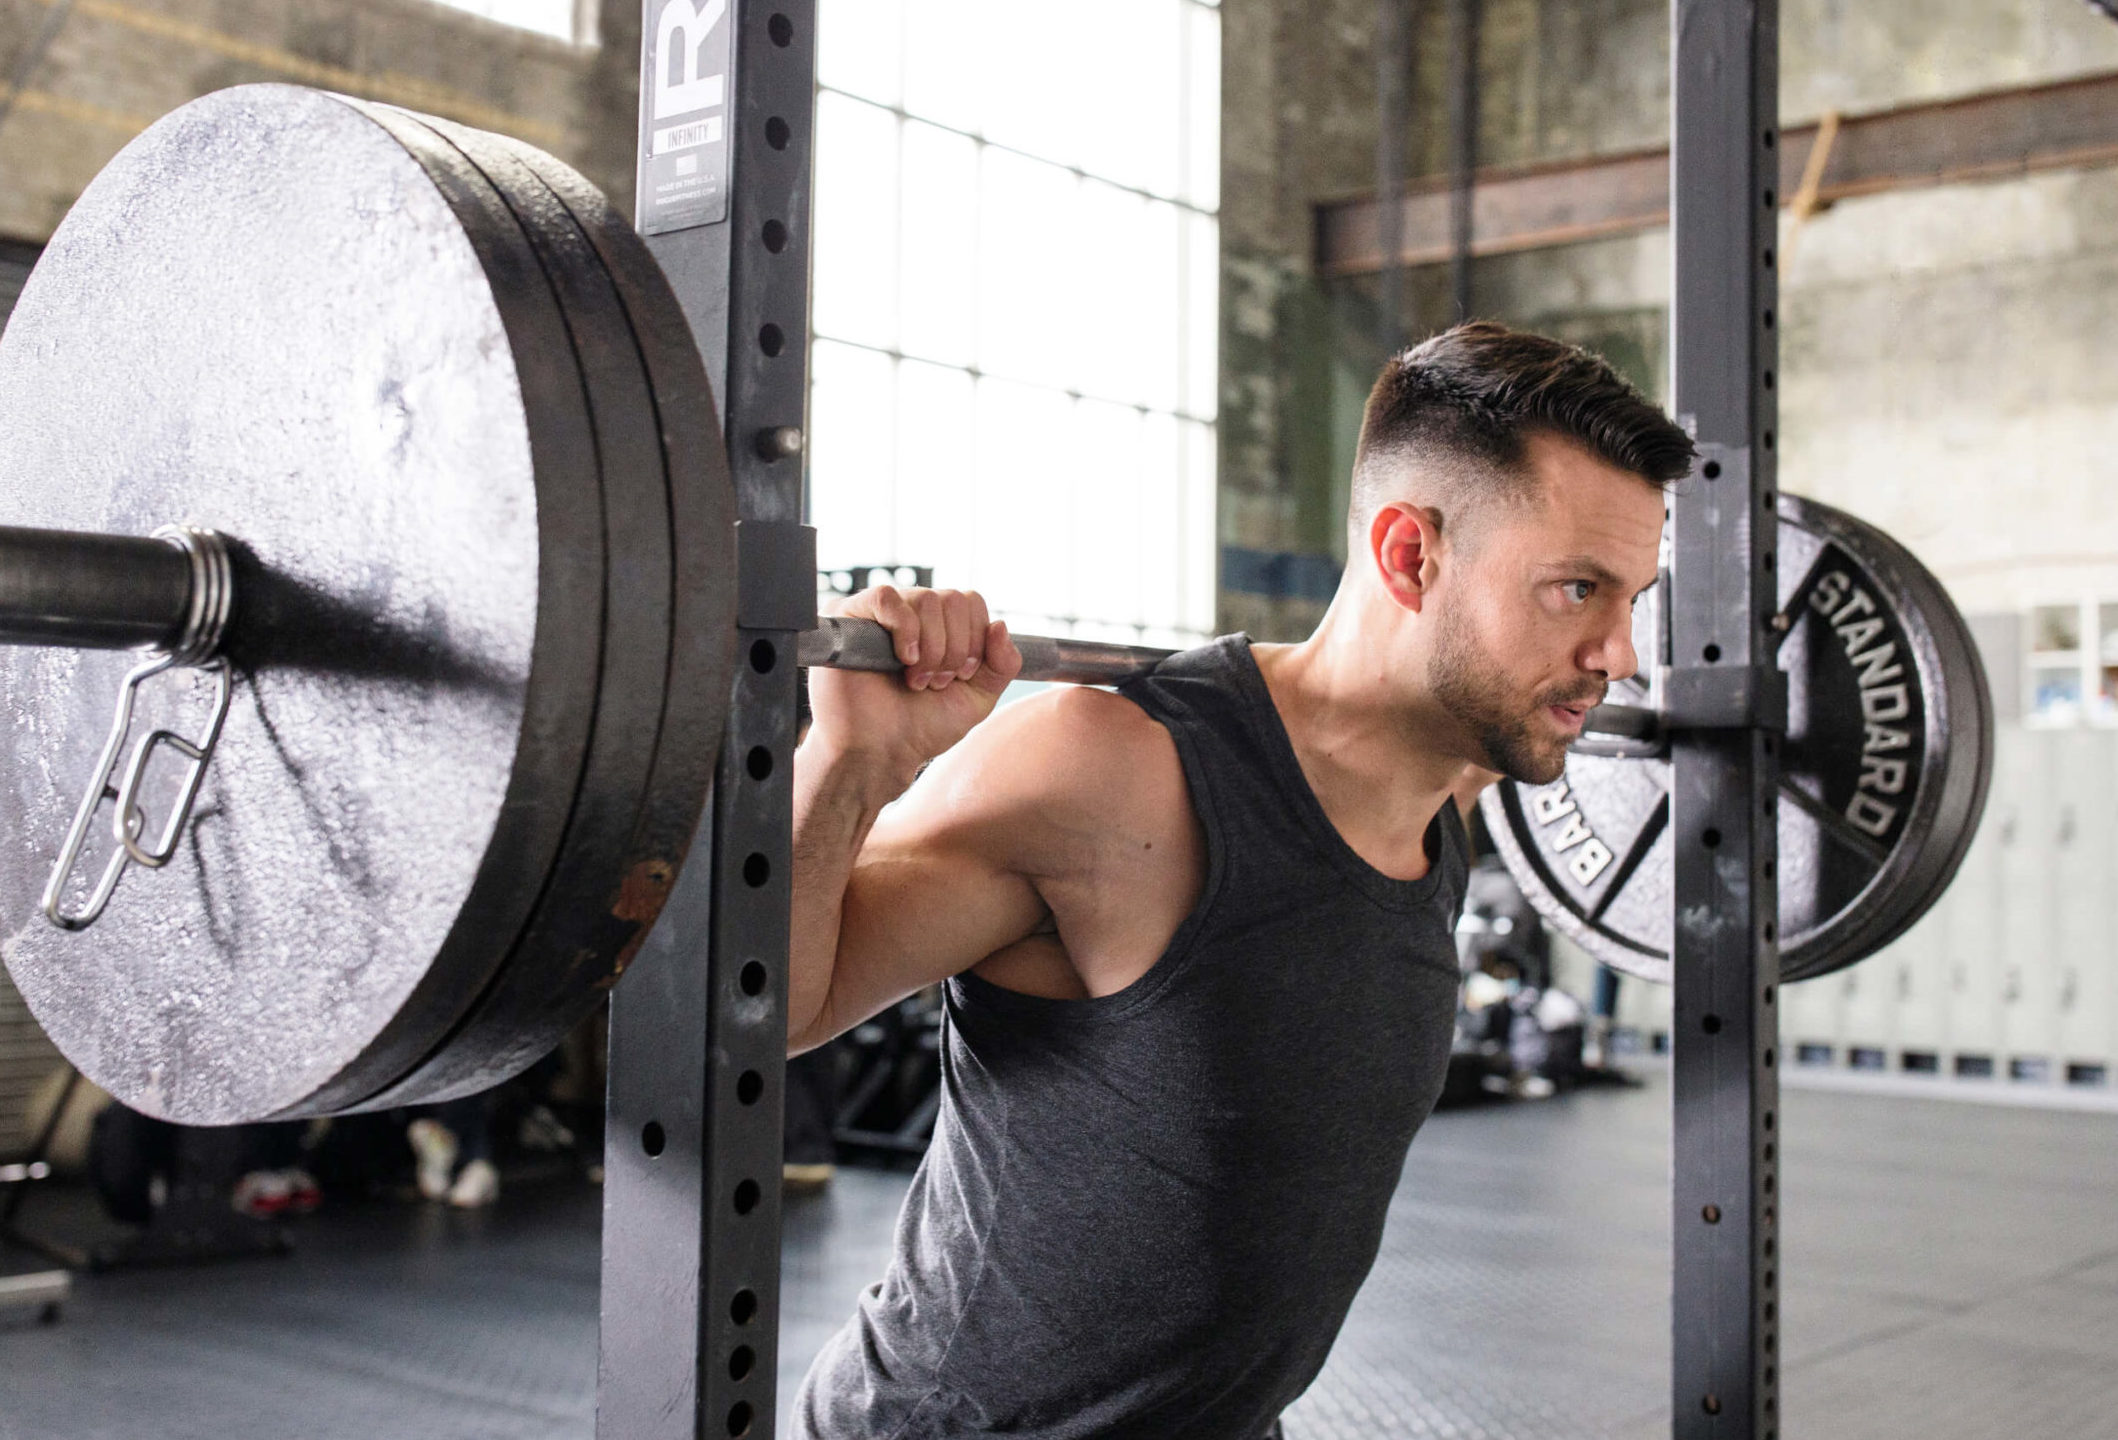 A picture of a Caliber online personal training client. A muscular male is wearing a grey vest performing a barbell back squat in a squat rack.